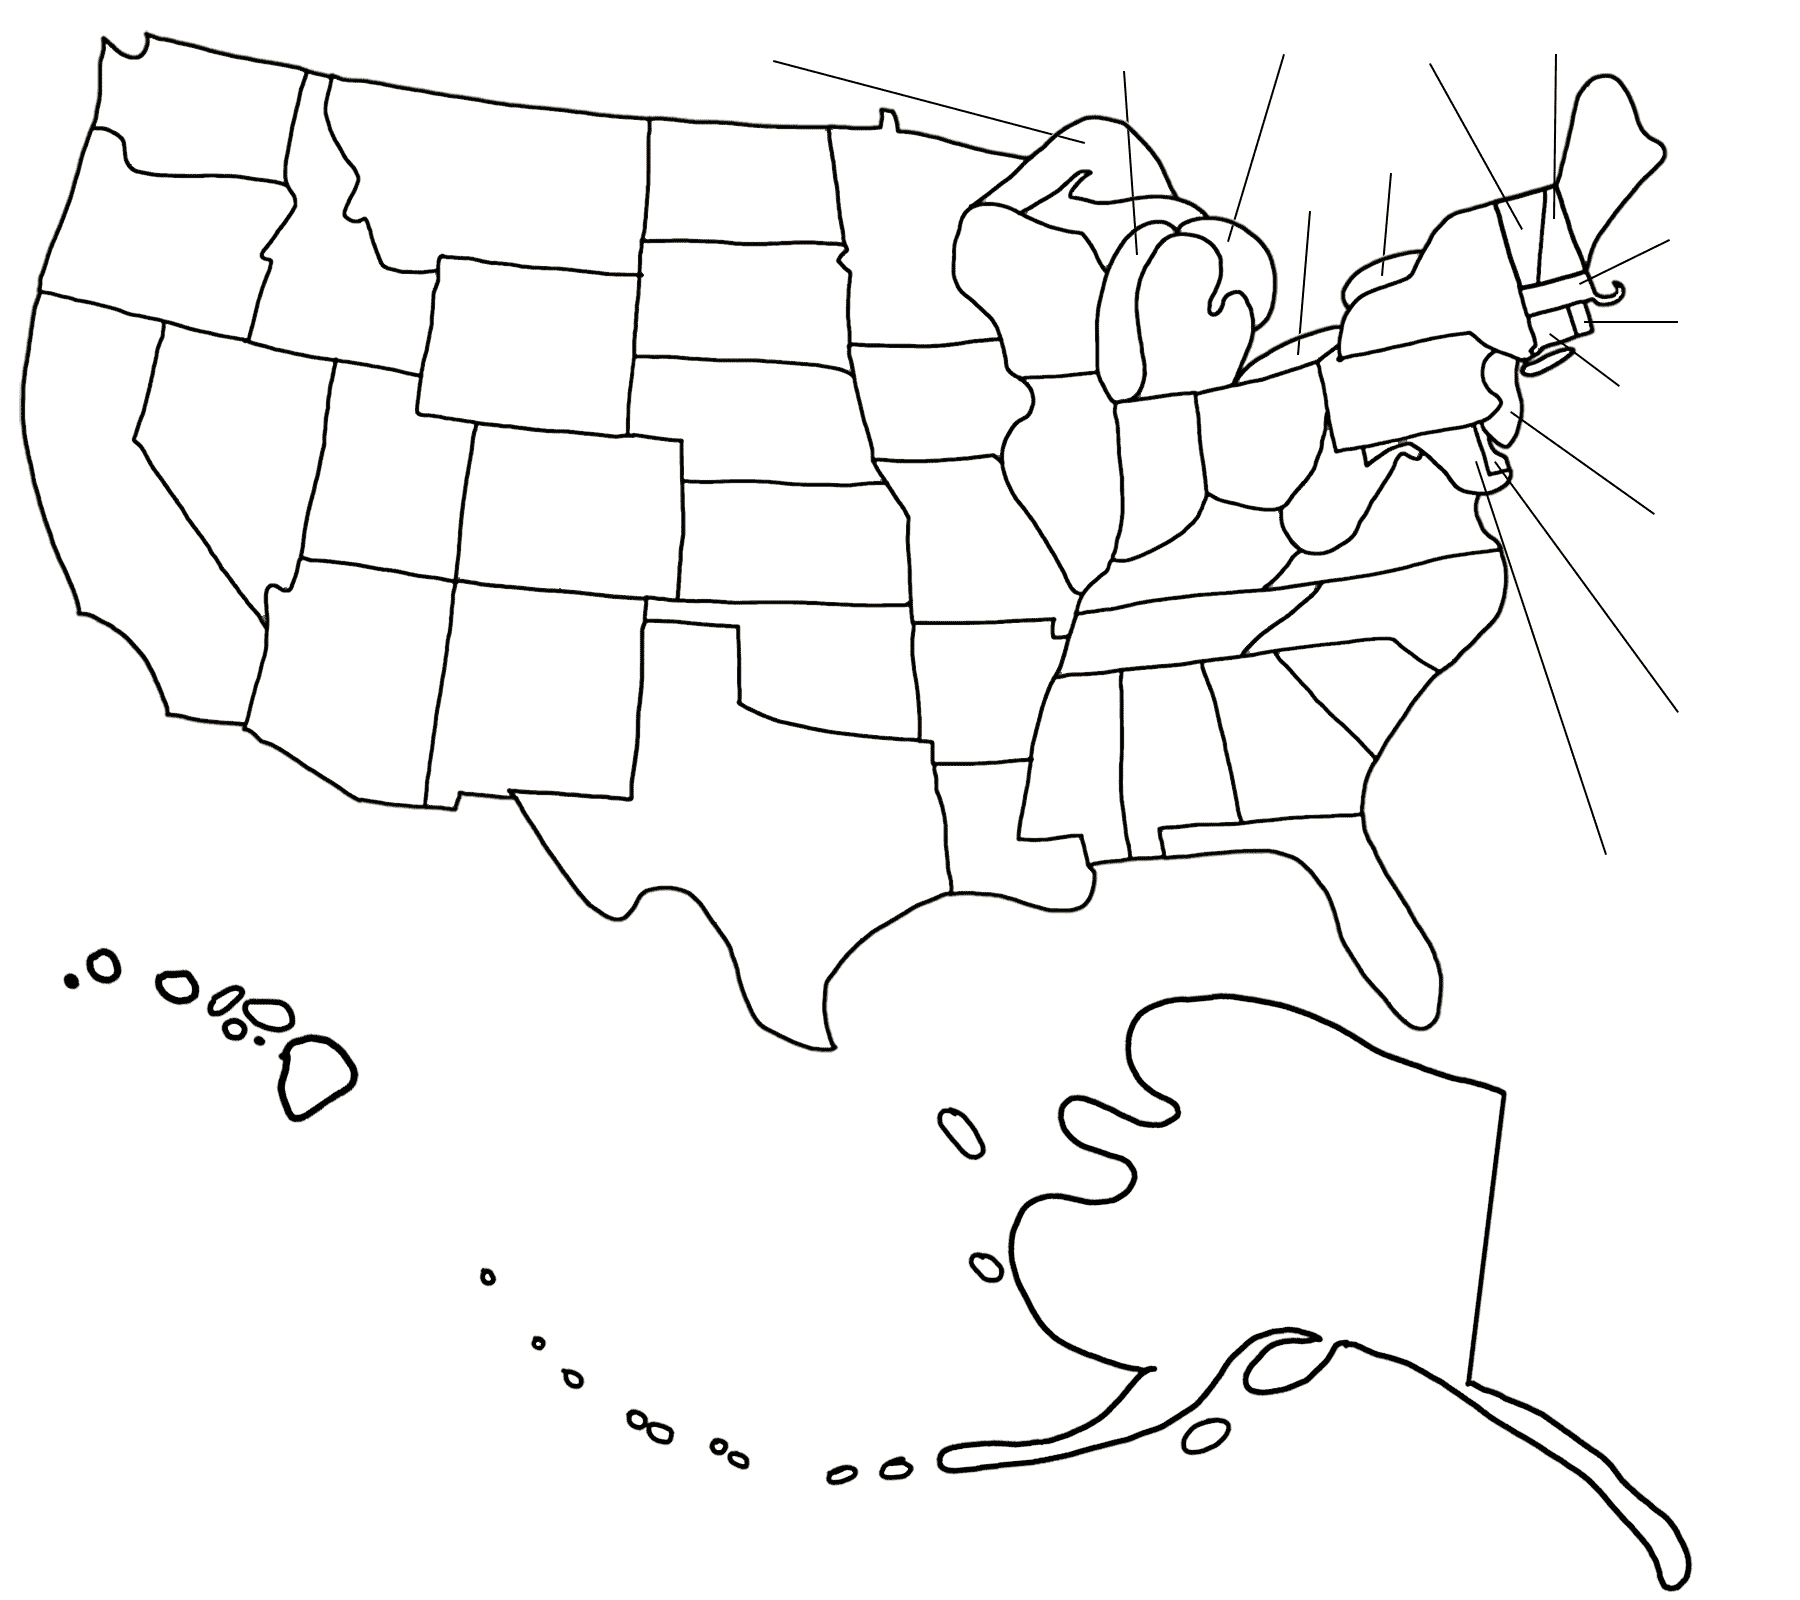 An outline of the states of the USA